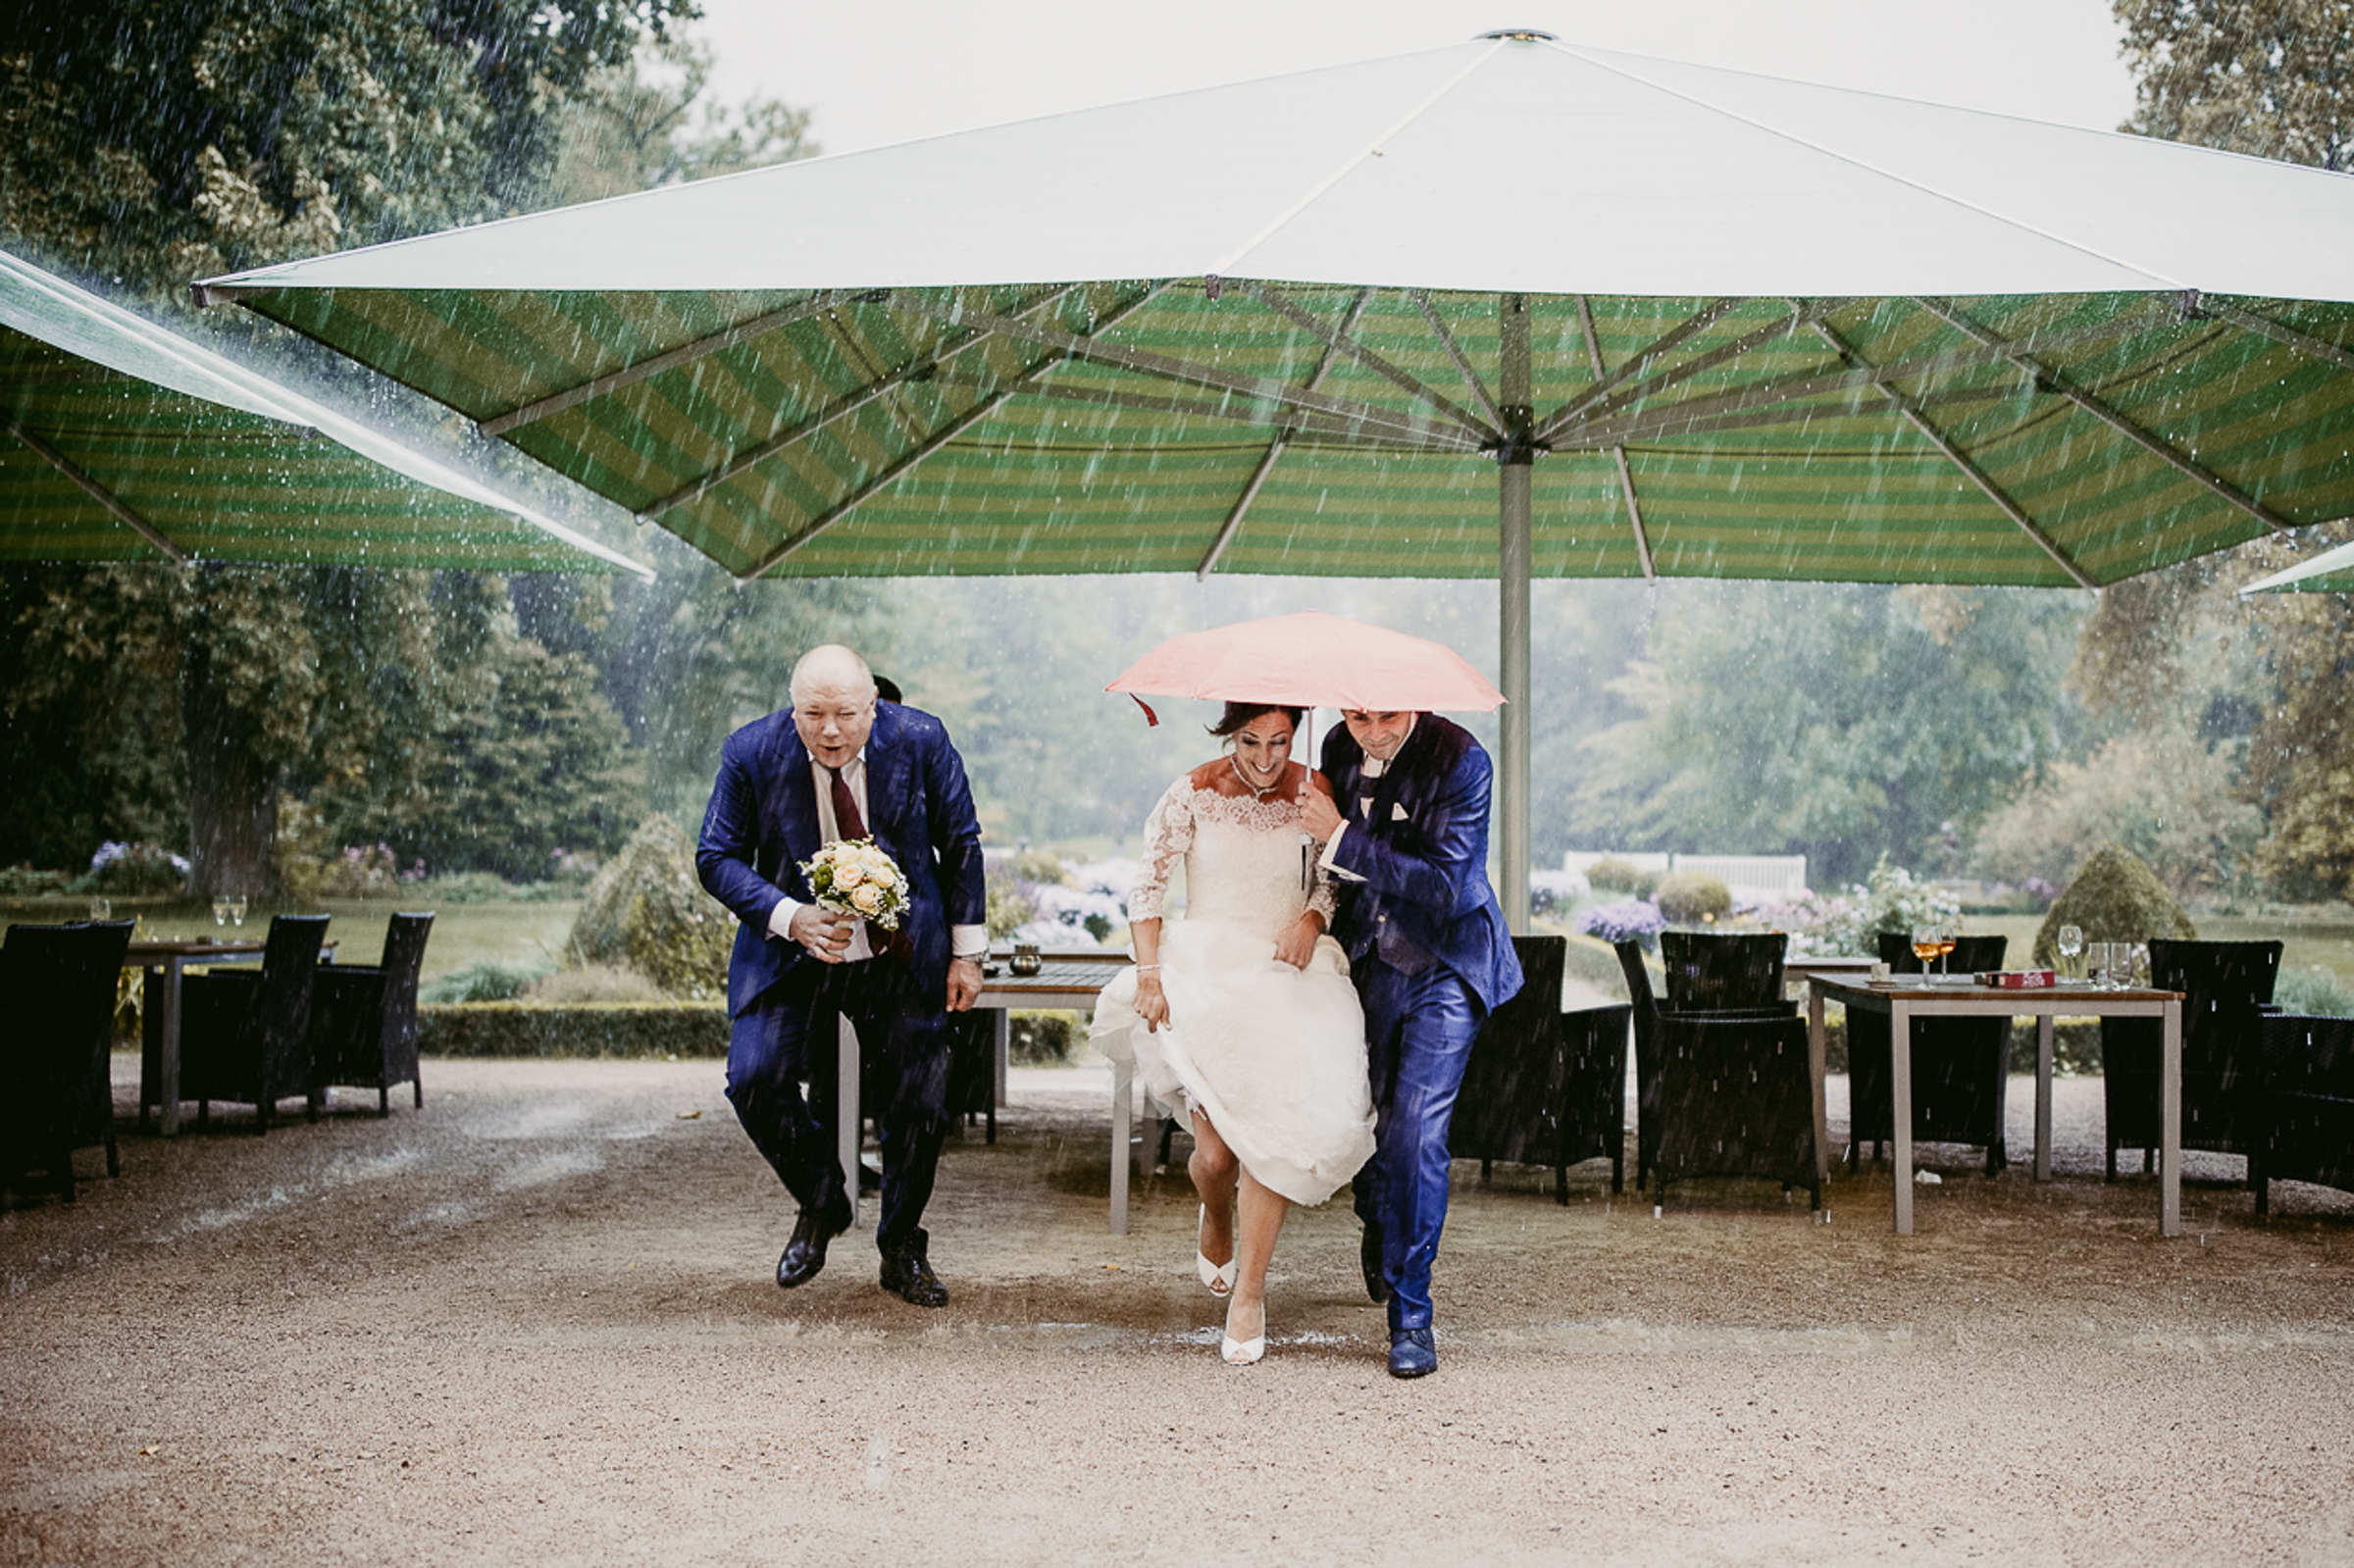 bride and groom running to avoid rain under umbrella- photo by FineArt Weddings | Photography